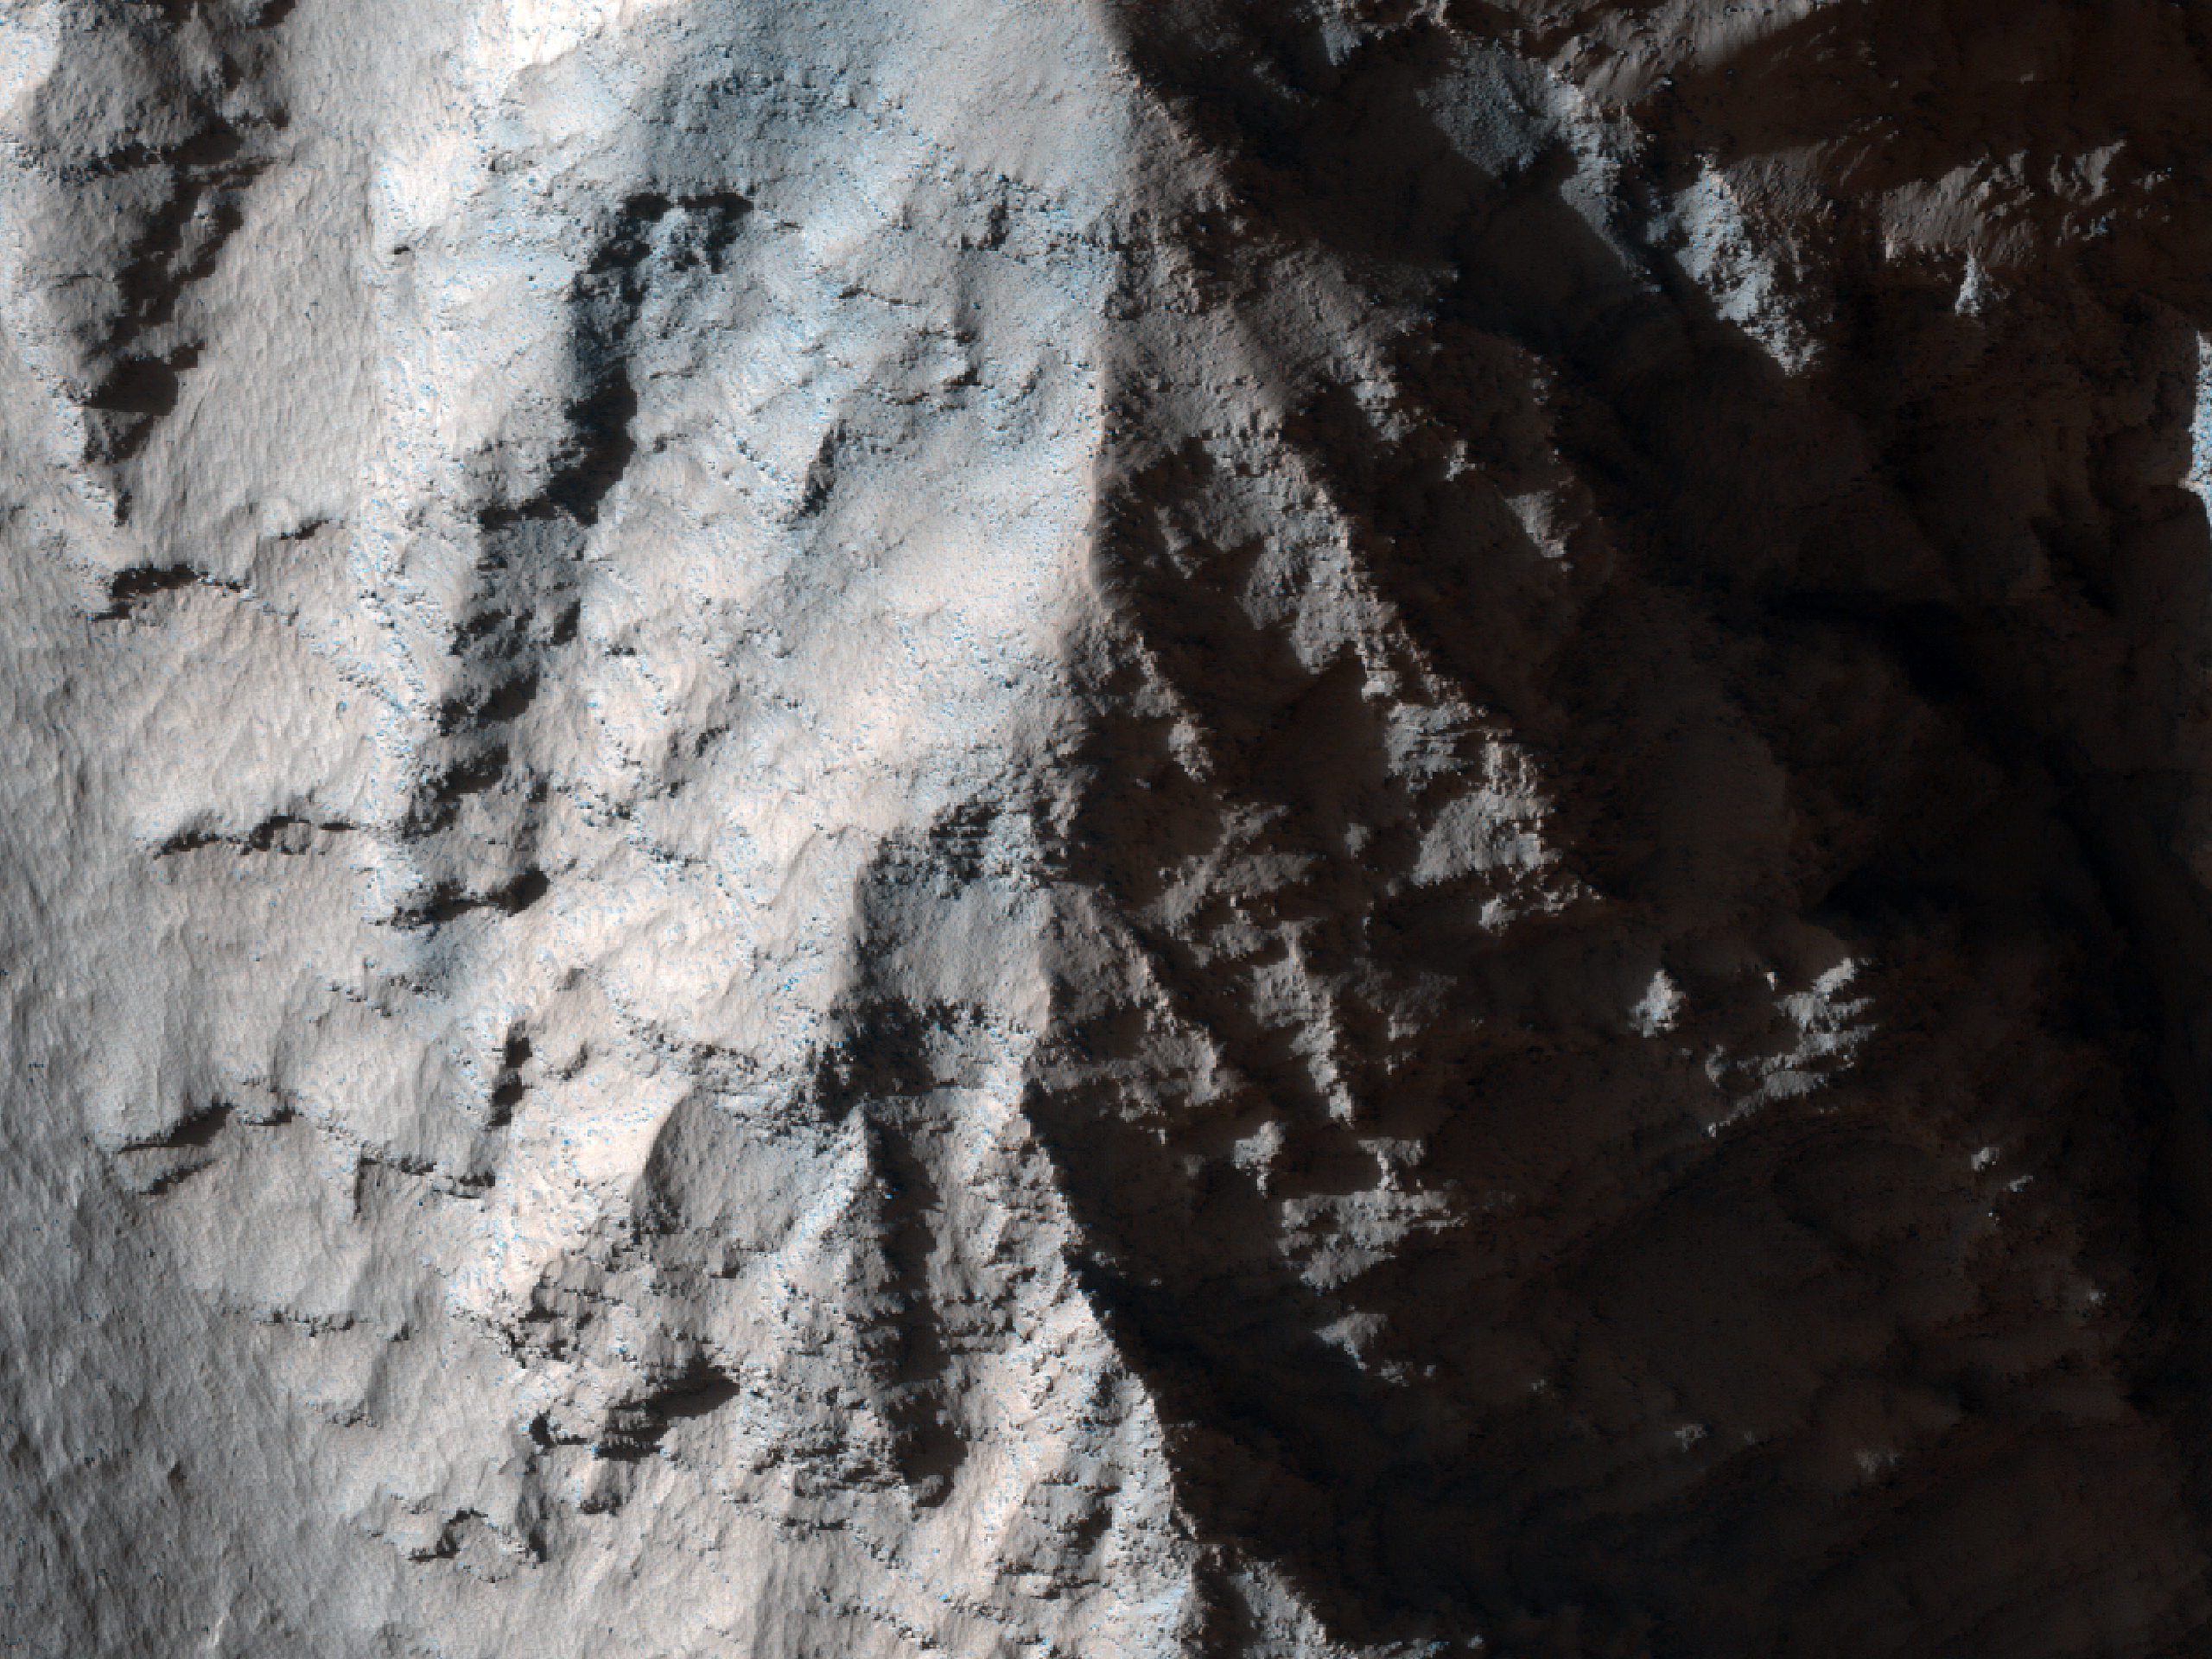 Bedrock Layers in Tithonium Chasma